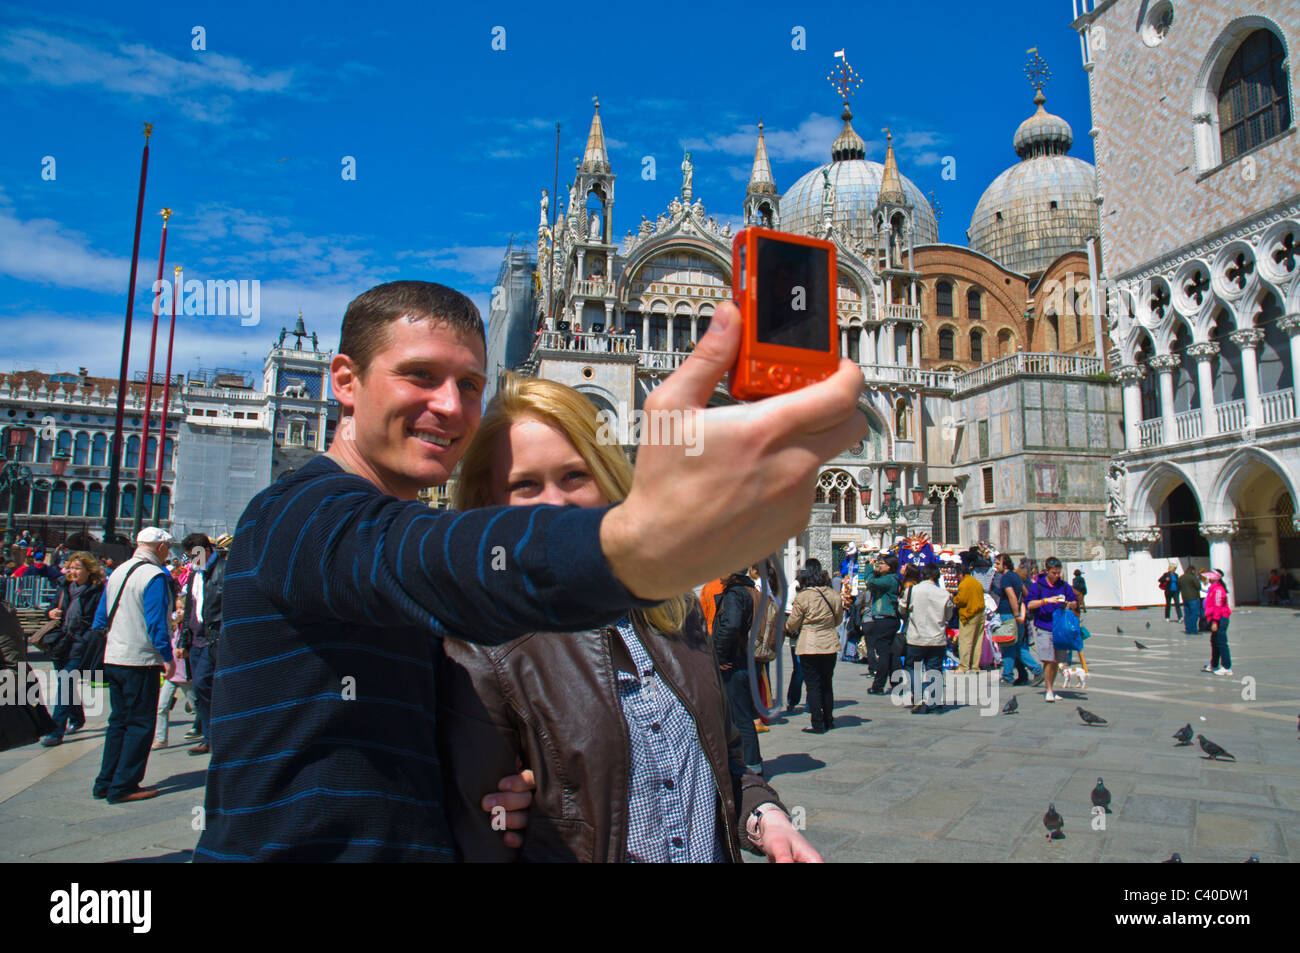 Russian tourists taking photo of themselves at Piazza San Marco square Venice Italy Europe - Stock Image